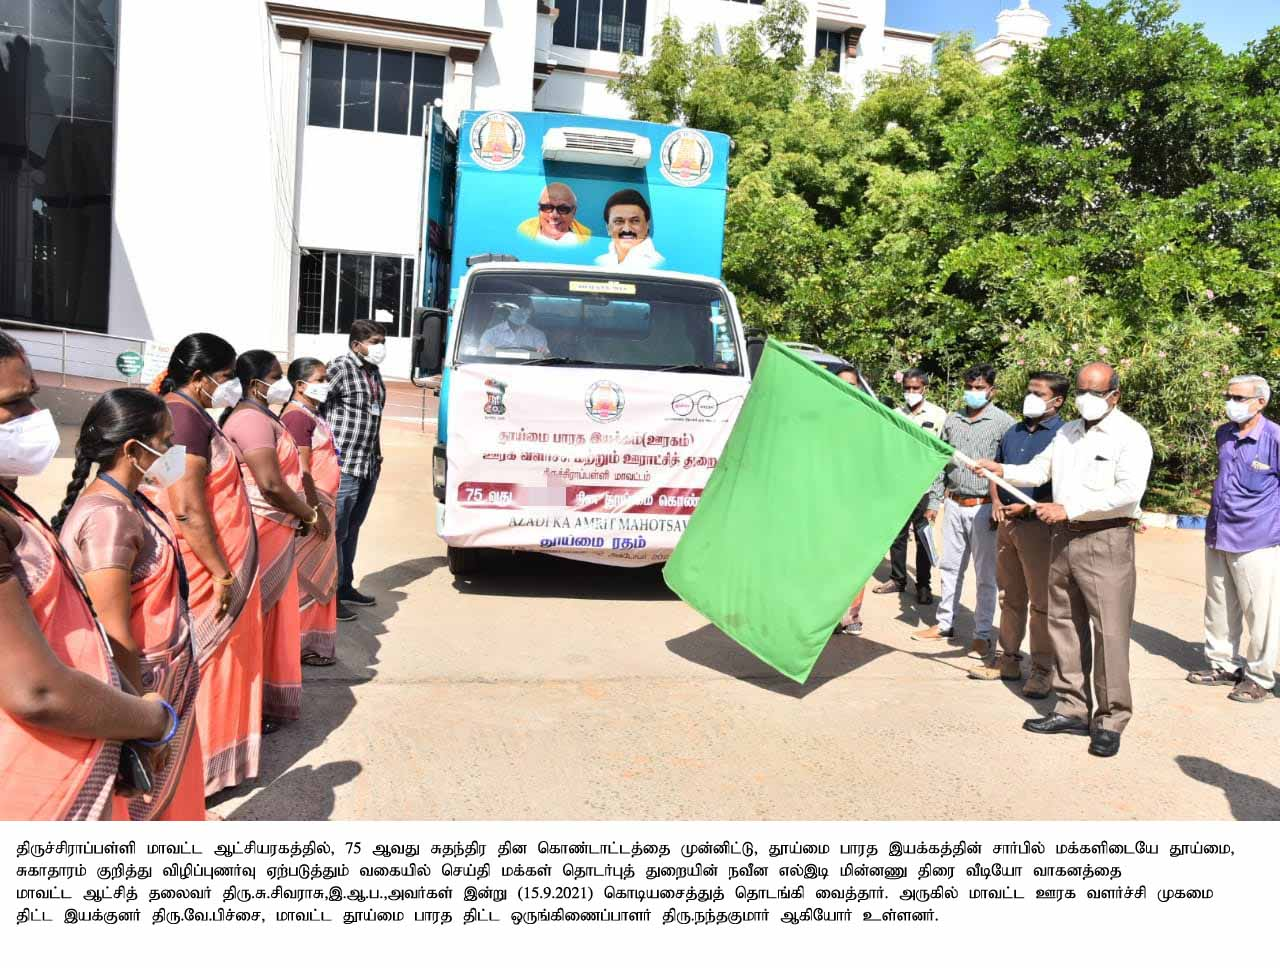 District Collector Inaugurated Swachh Bharat Missions Awareness Programmse on 15-09-2021